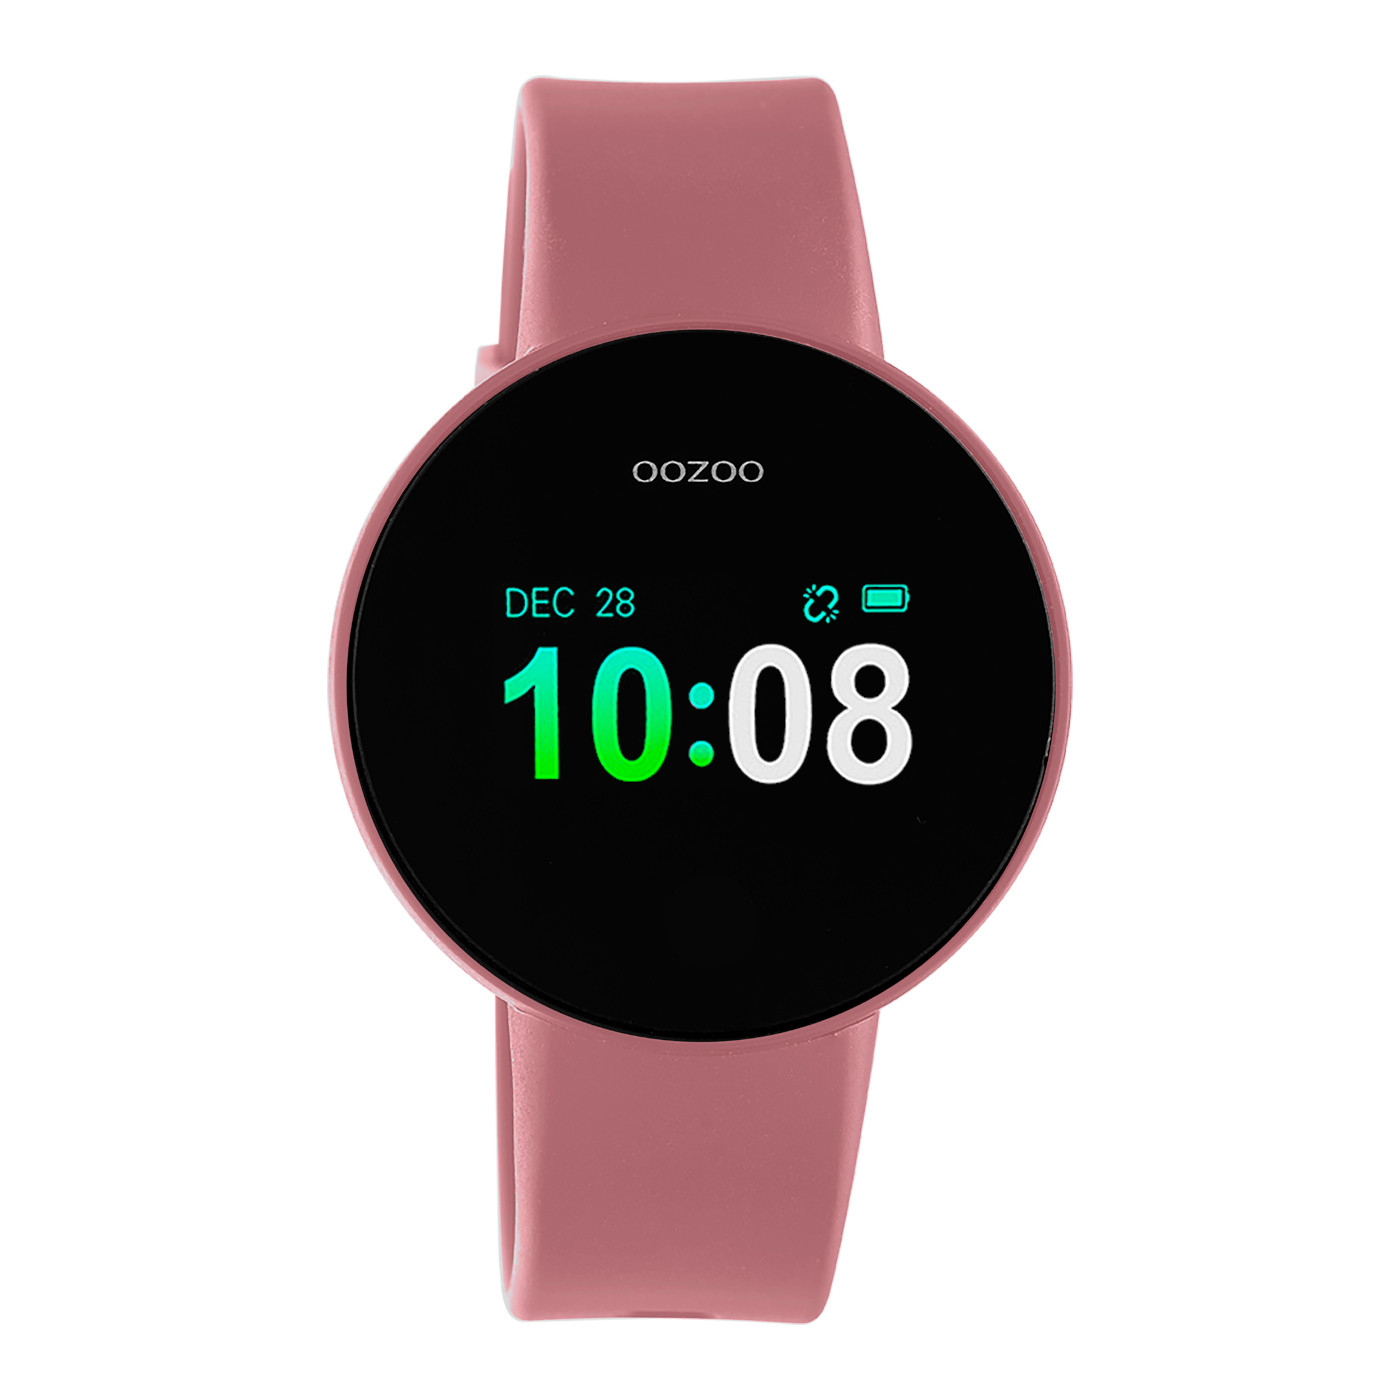 OOZOO Roze Display Smartwatch Q00209